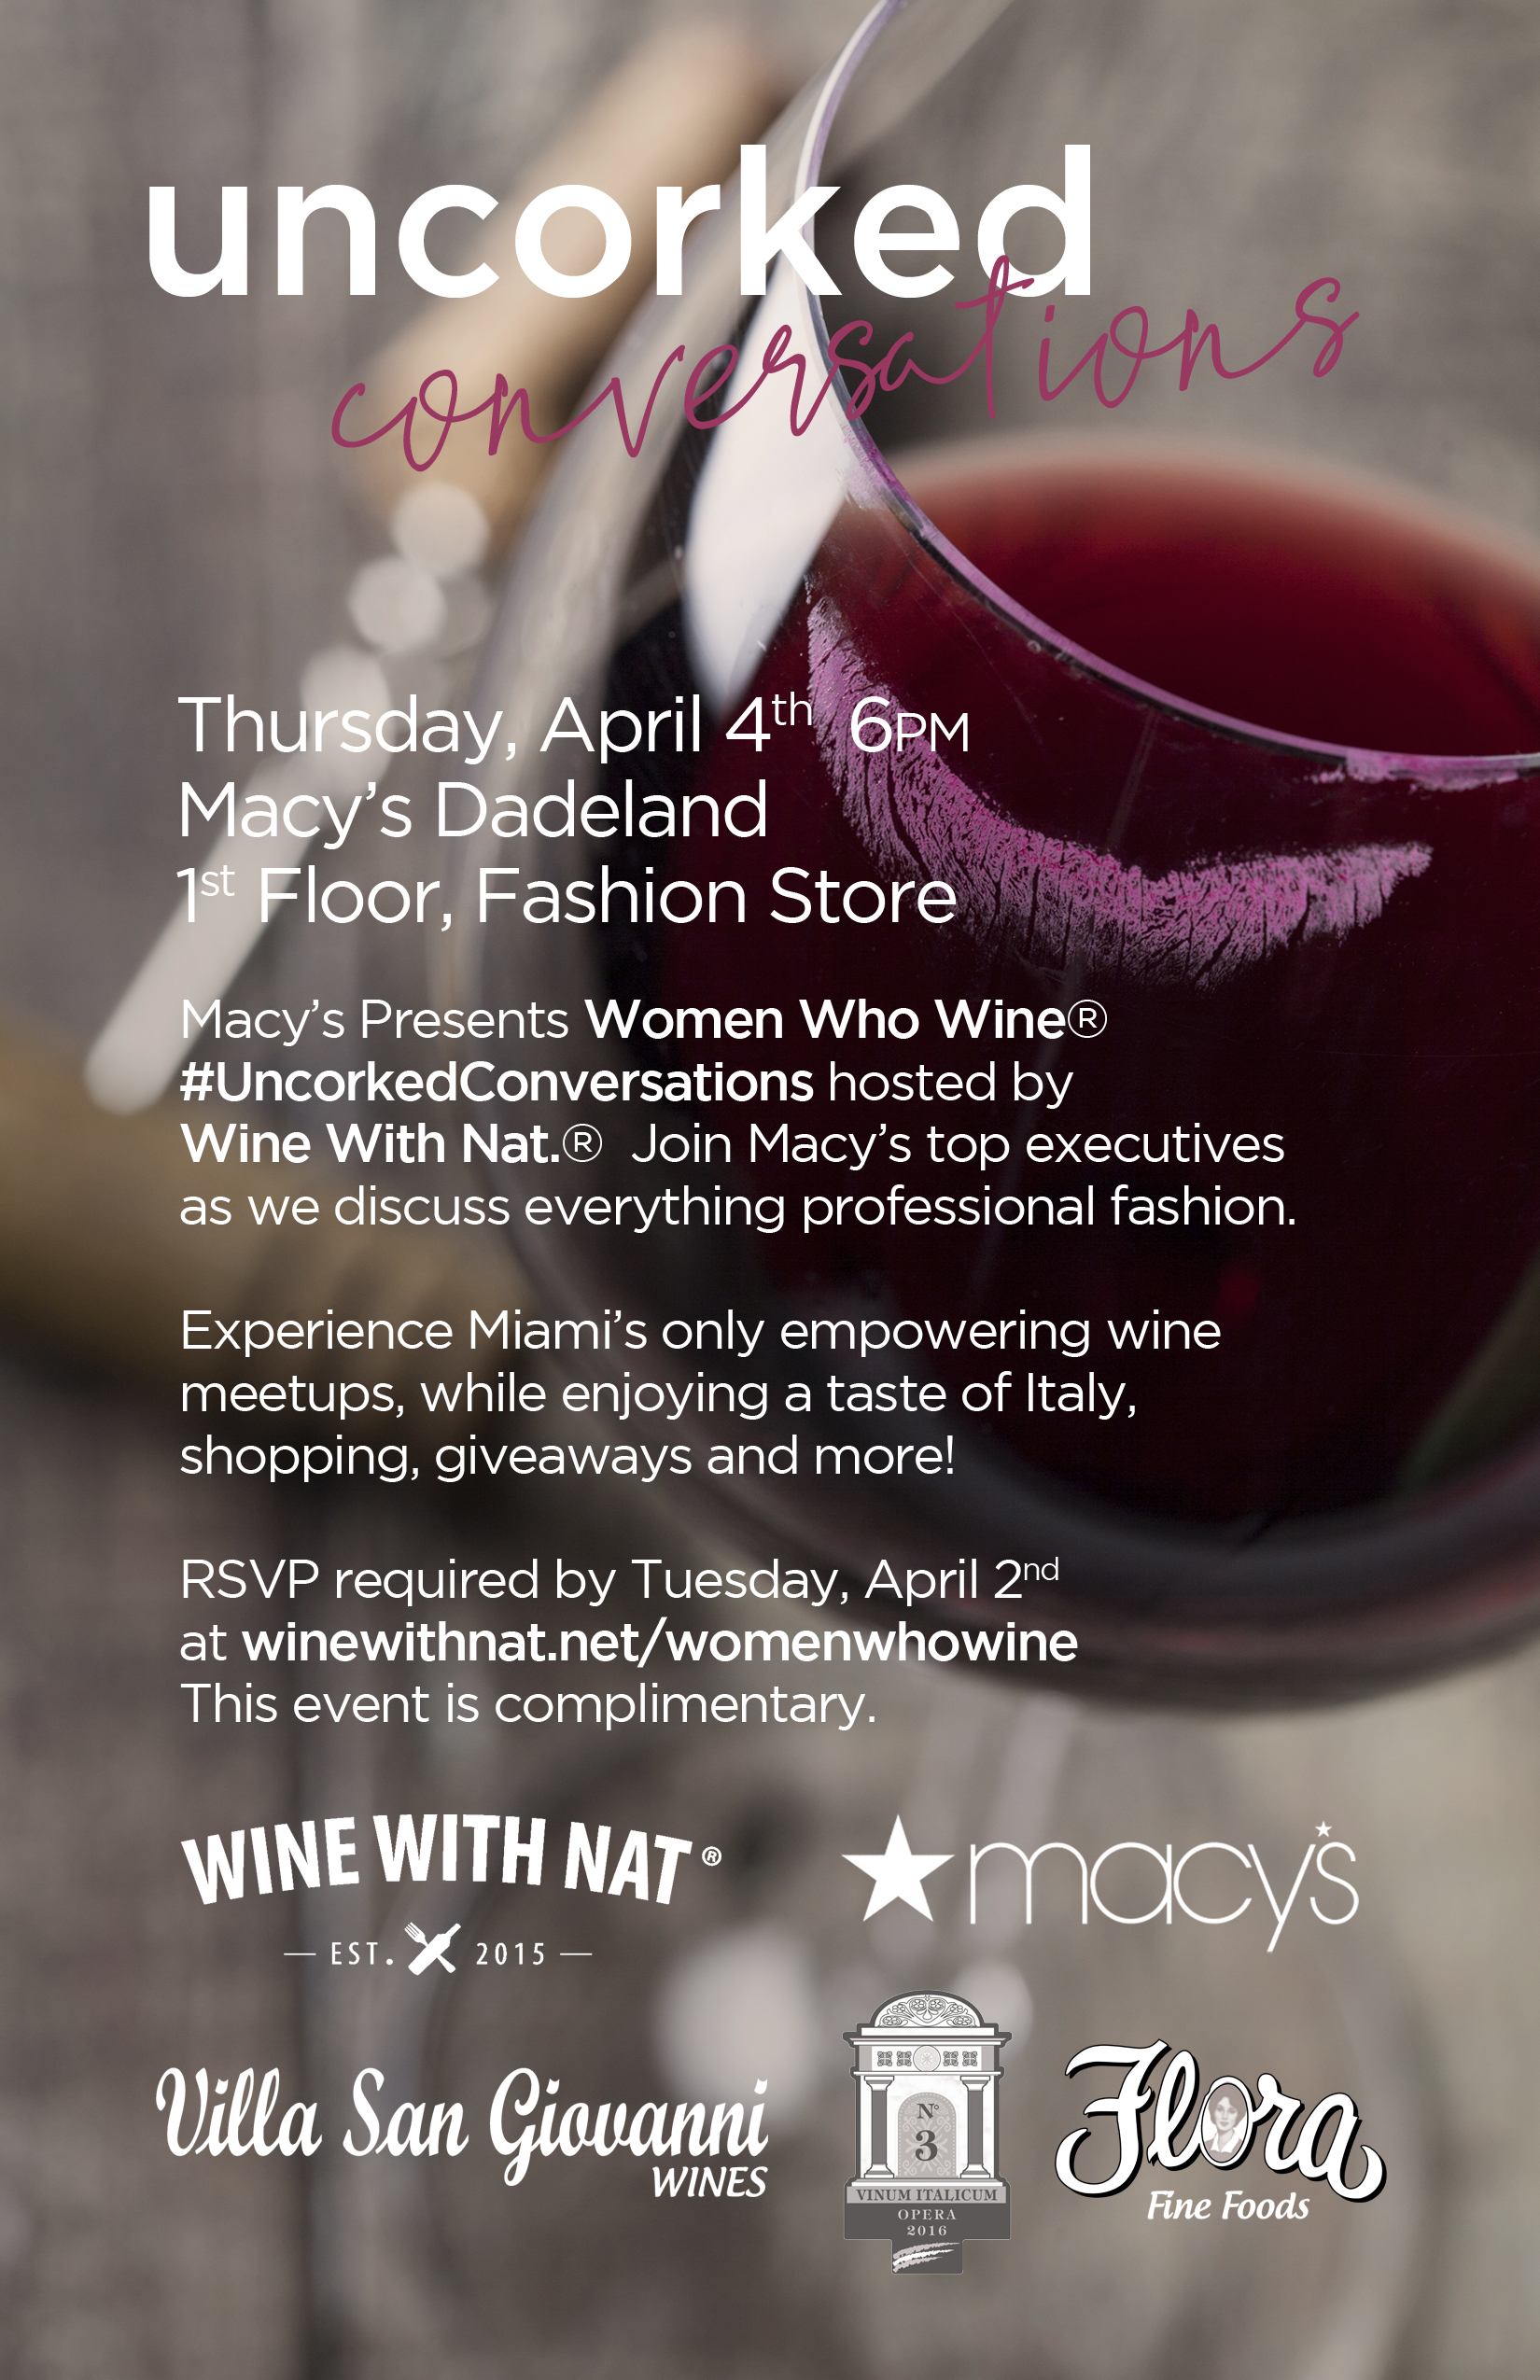 Wine With Nat-Women Who Wine Uncorked Conversations Event-Macys.jpg